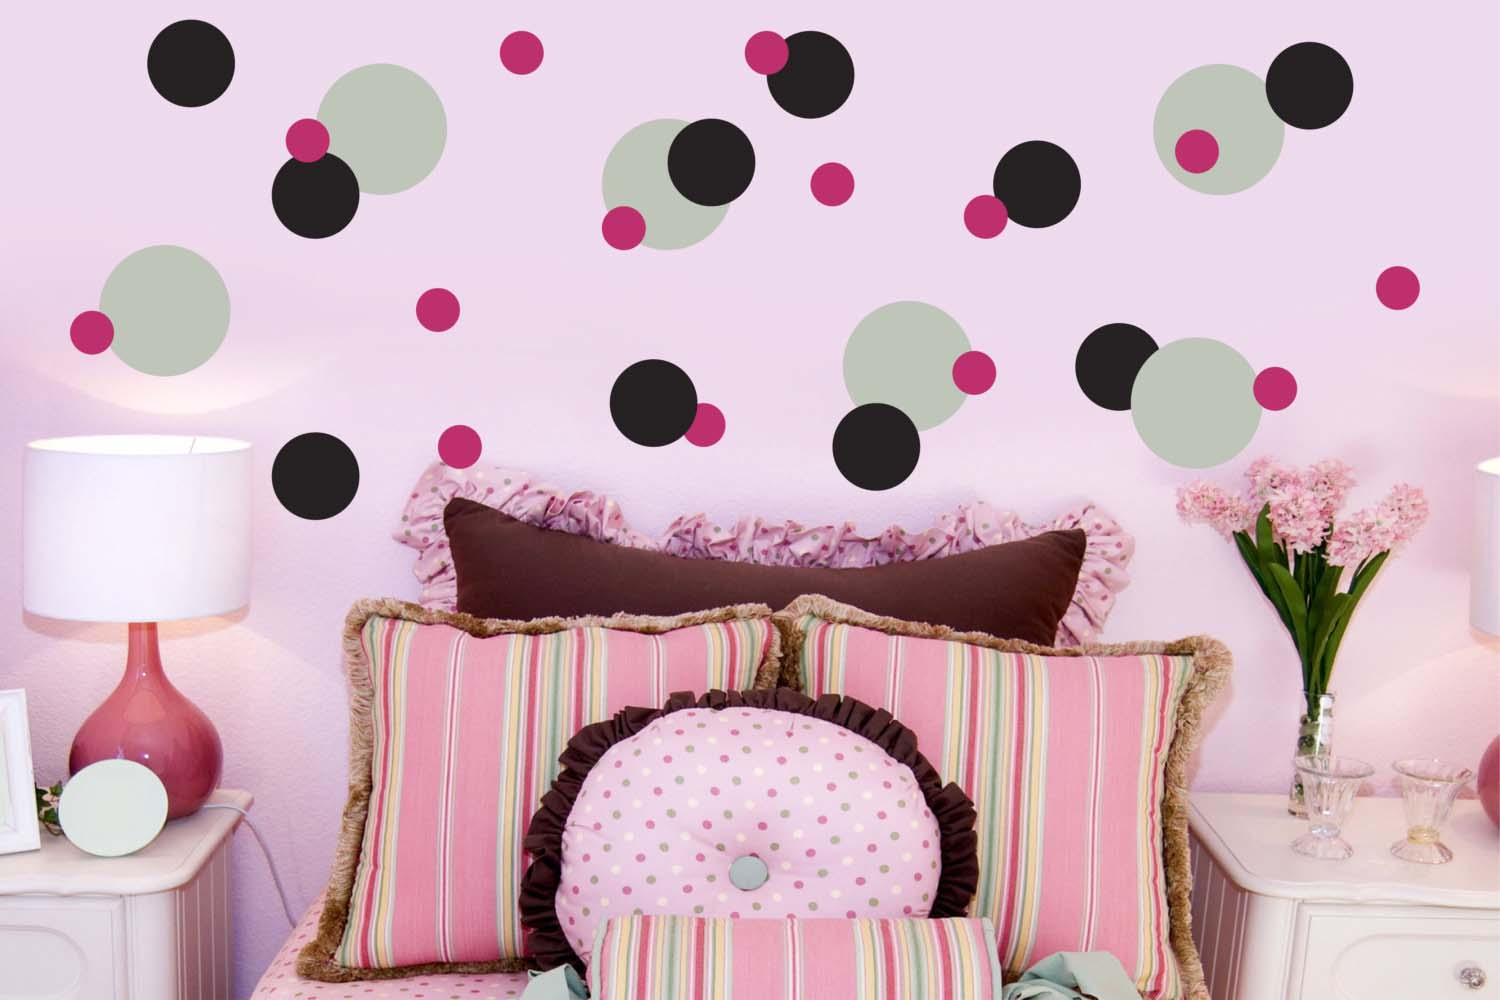 15 polka dot interior wall designs decor ideas design for Polka dot bedroom designs